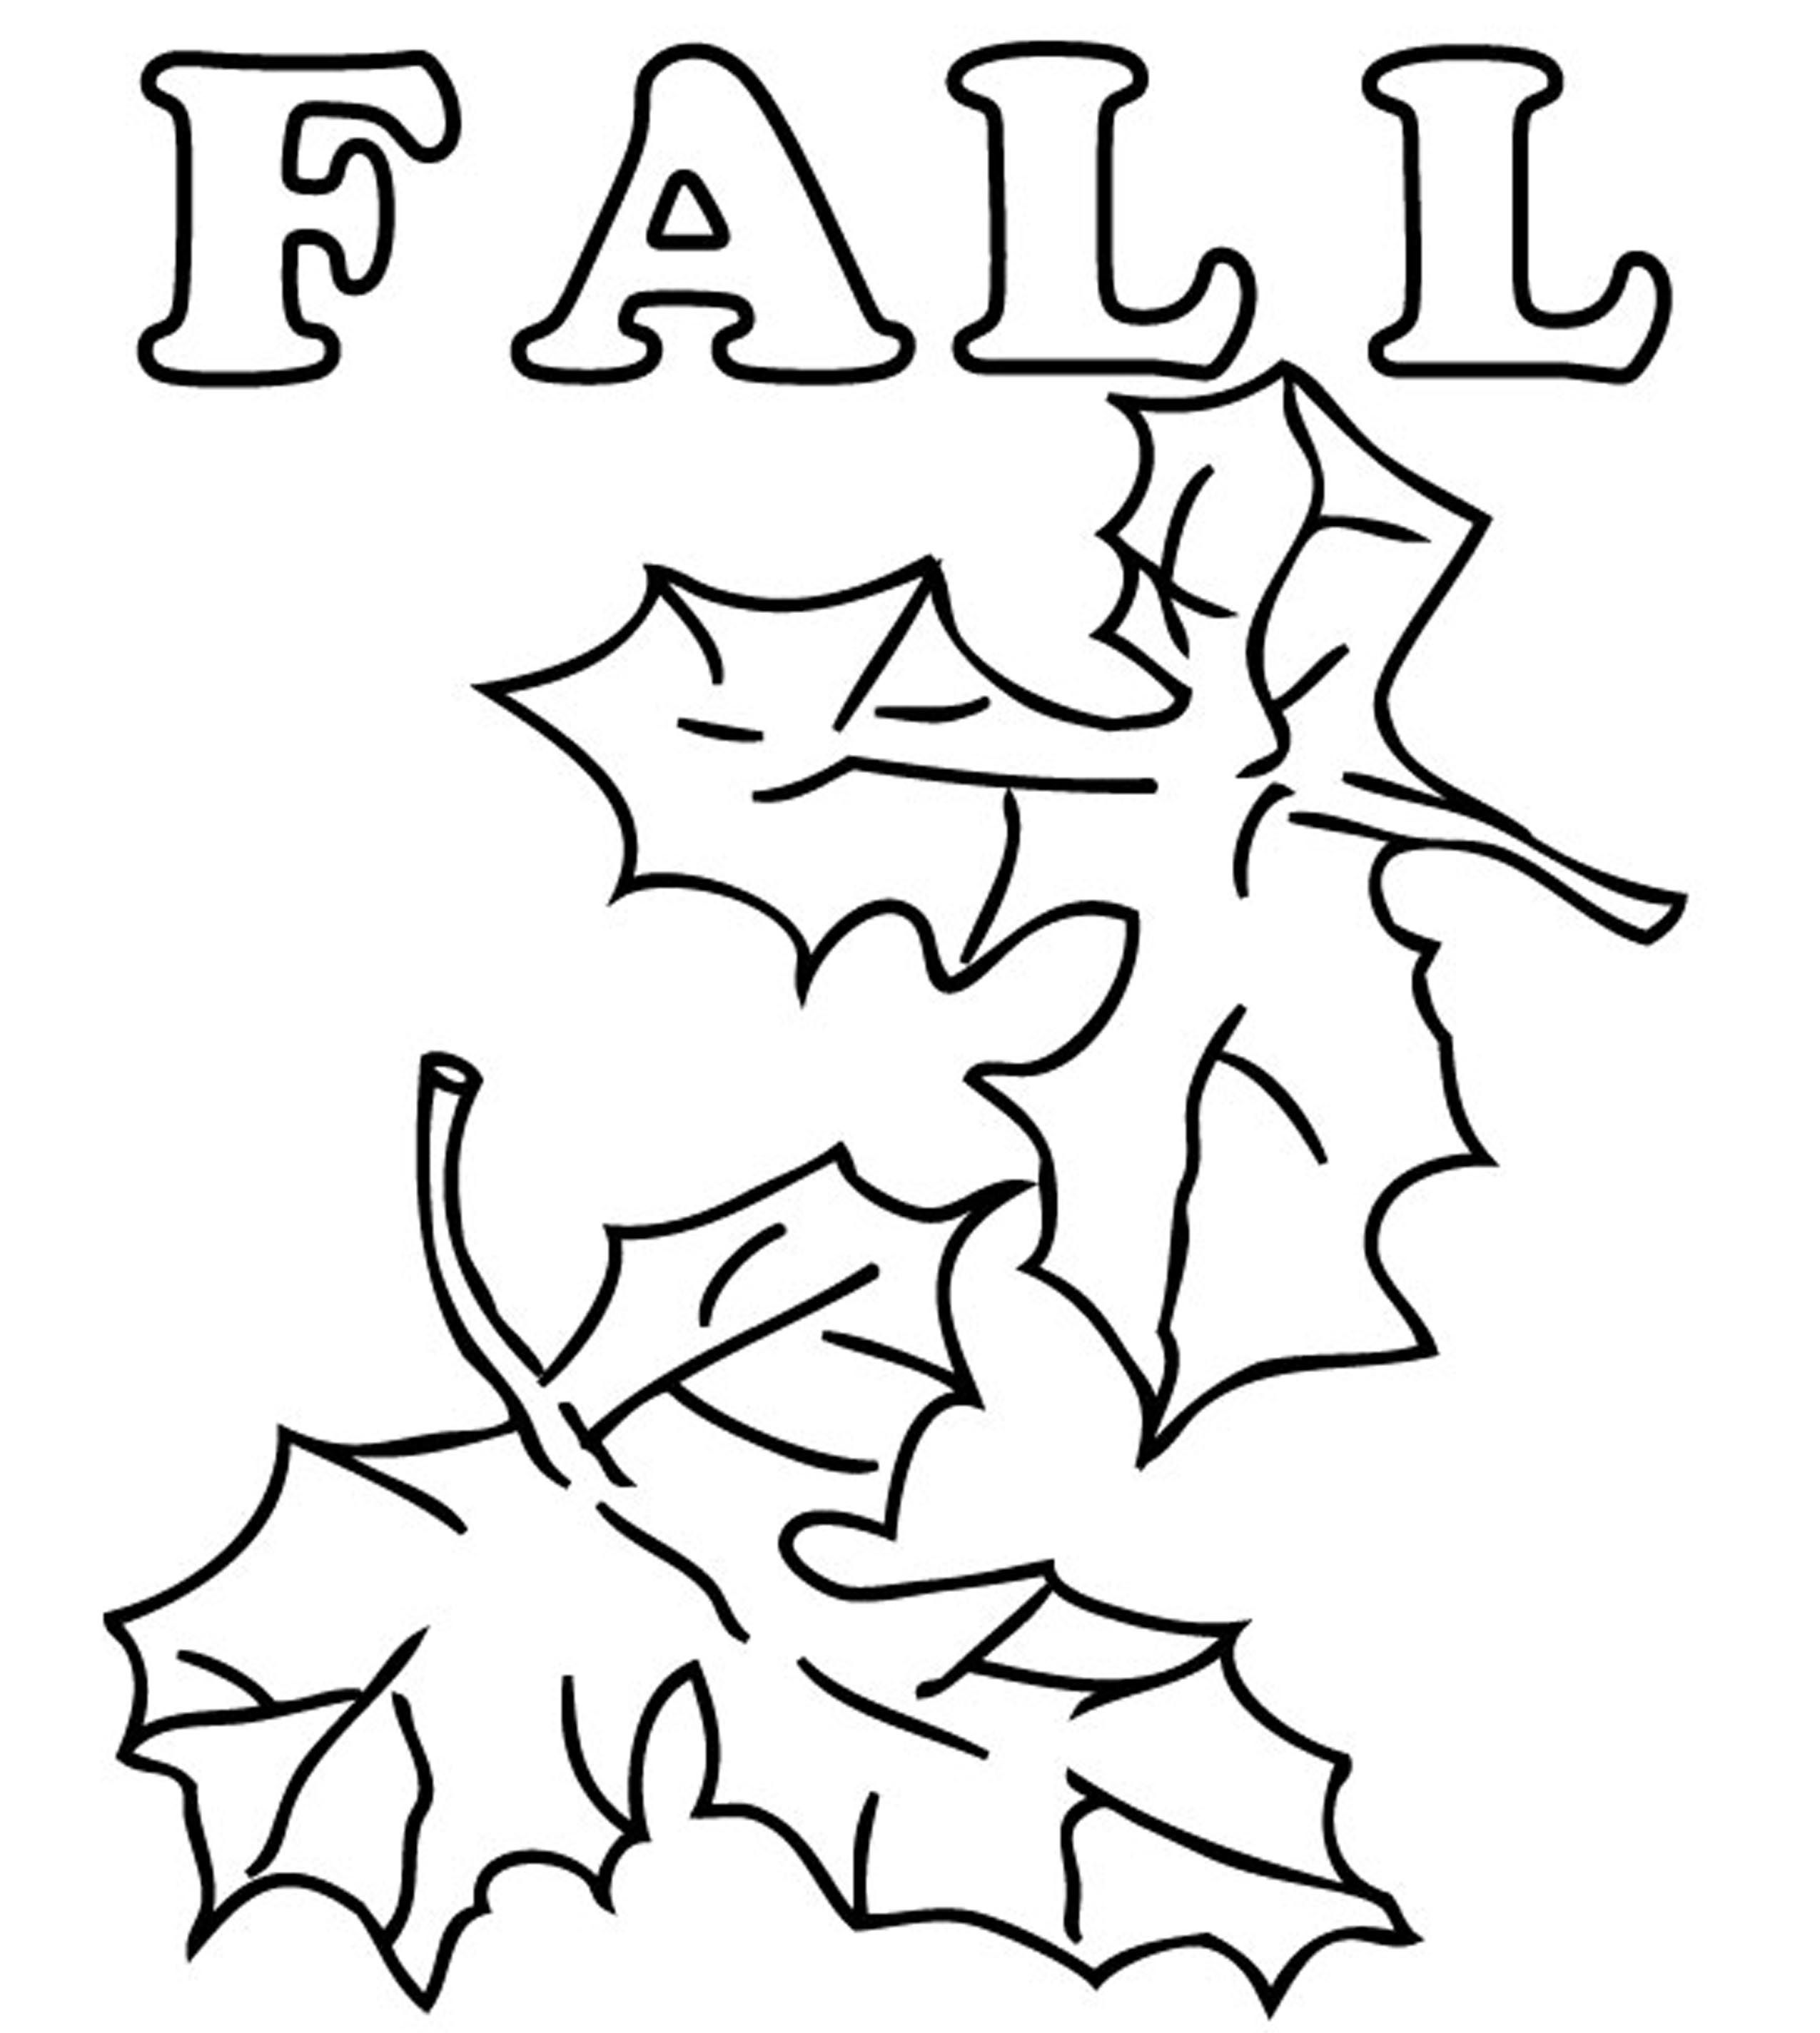 Autumn Leaf Coloring Page - Coloring Home